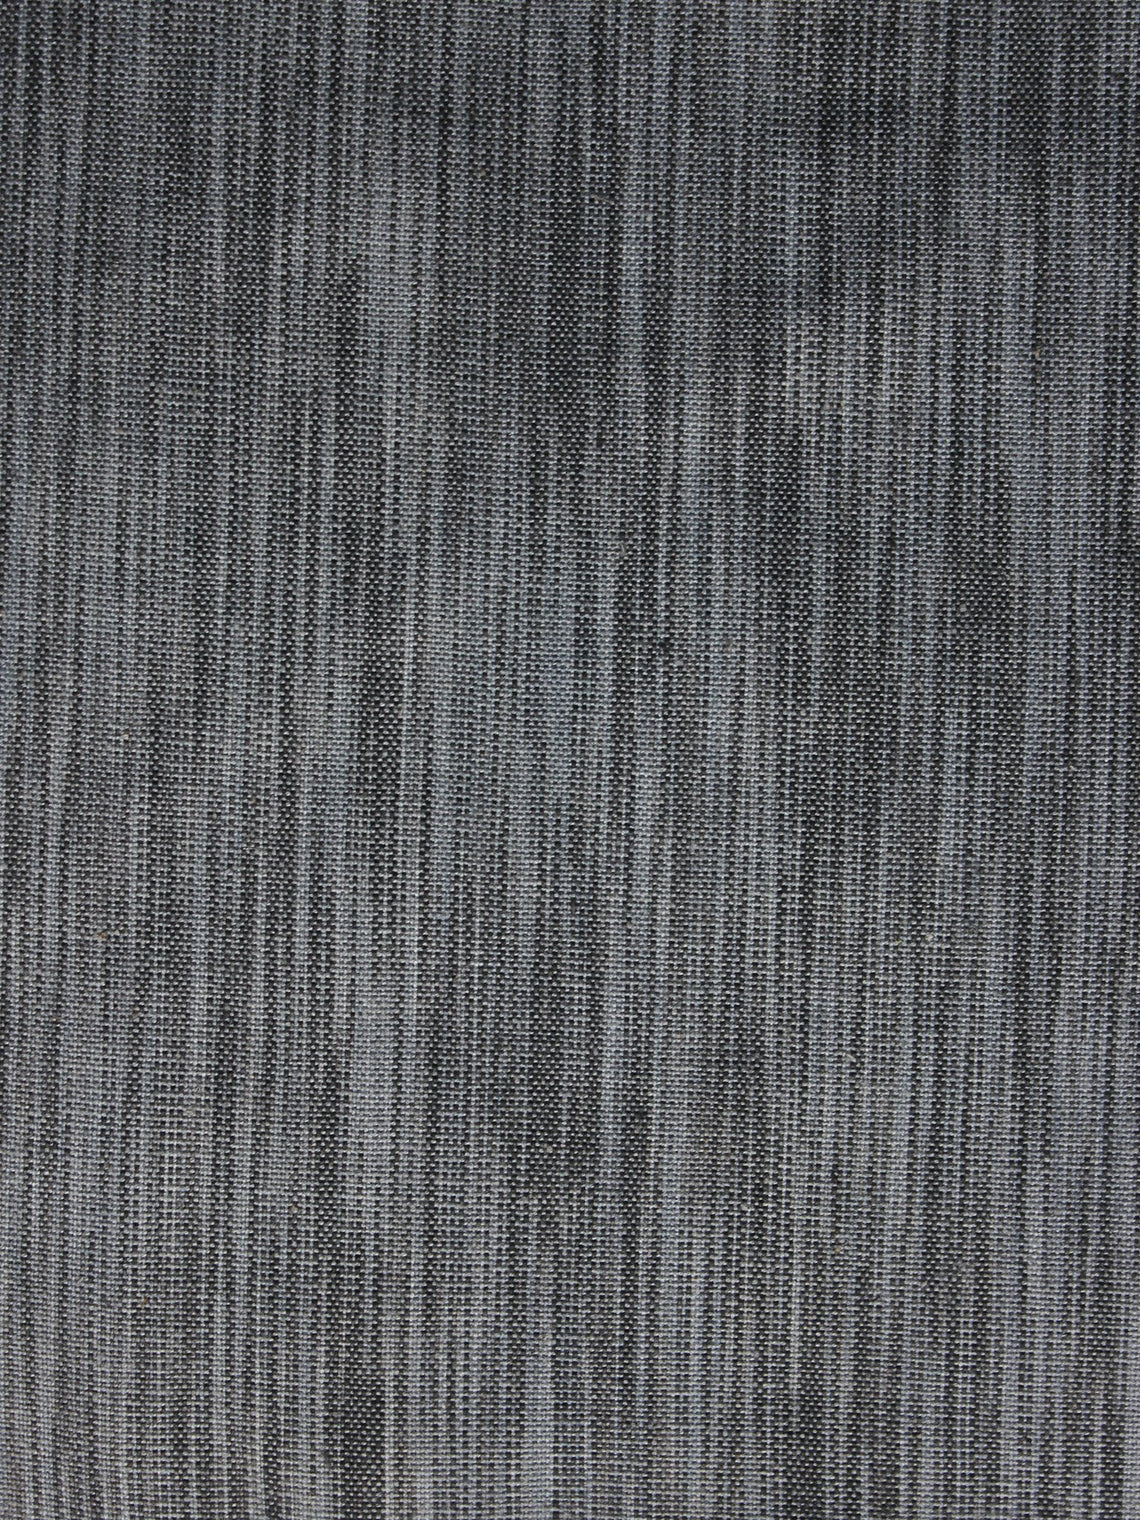 Shaded Grey Pochampally Hand Weaved Ikat Fabric Per Meter - F003F1245